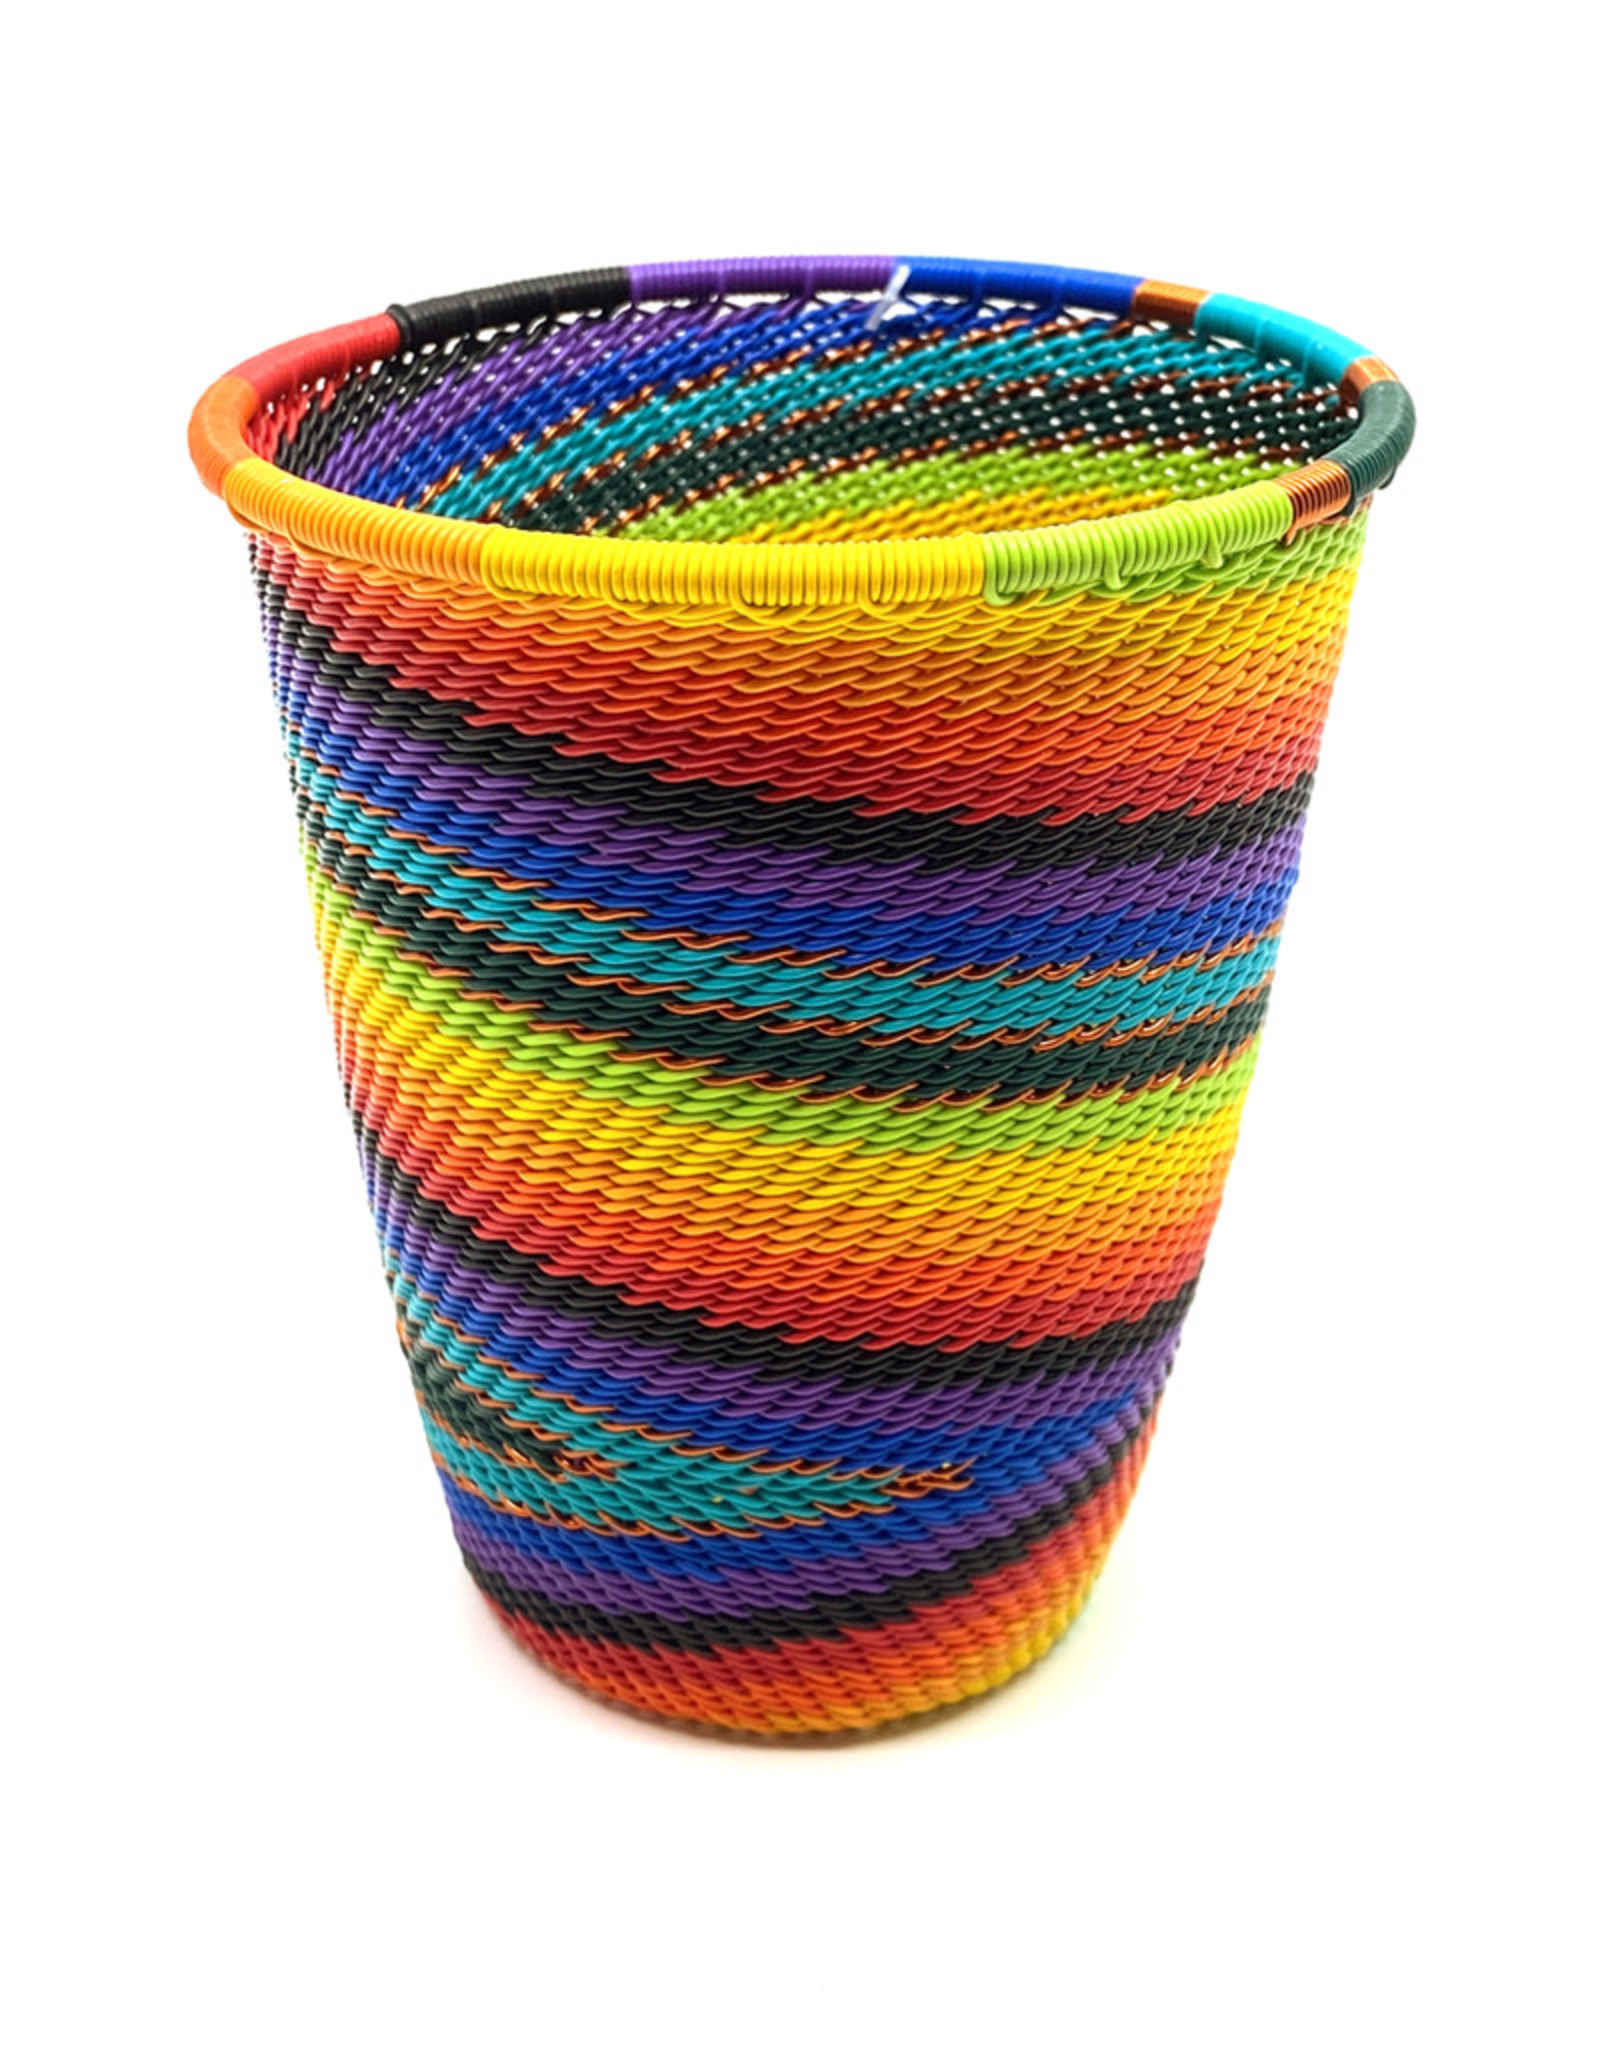 BASKETS OF AFRICA TALL RAINBOW CUP/PENCIL HOLDER